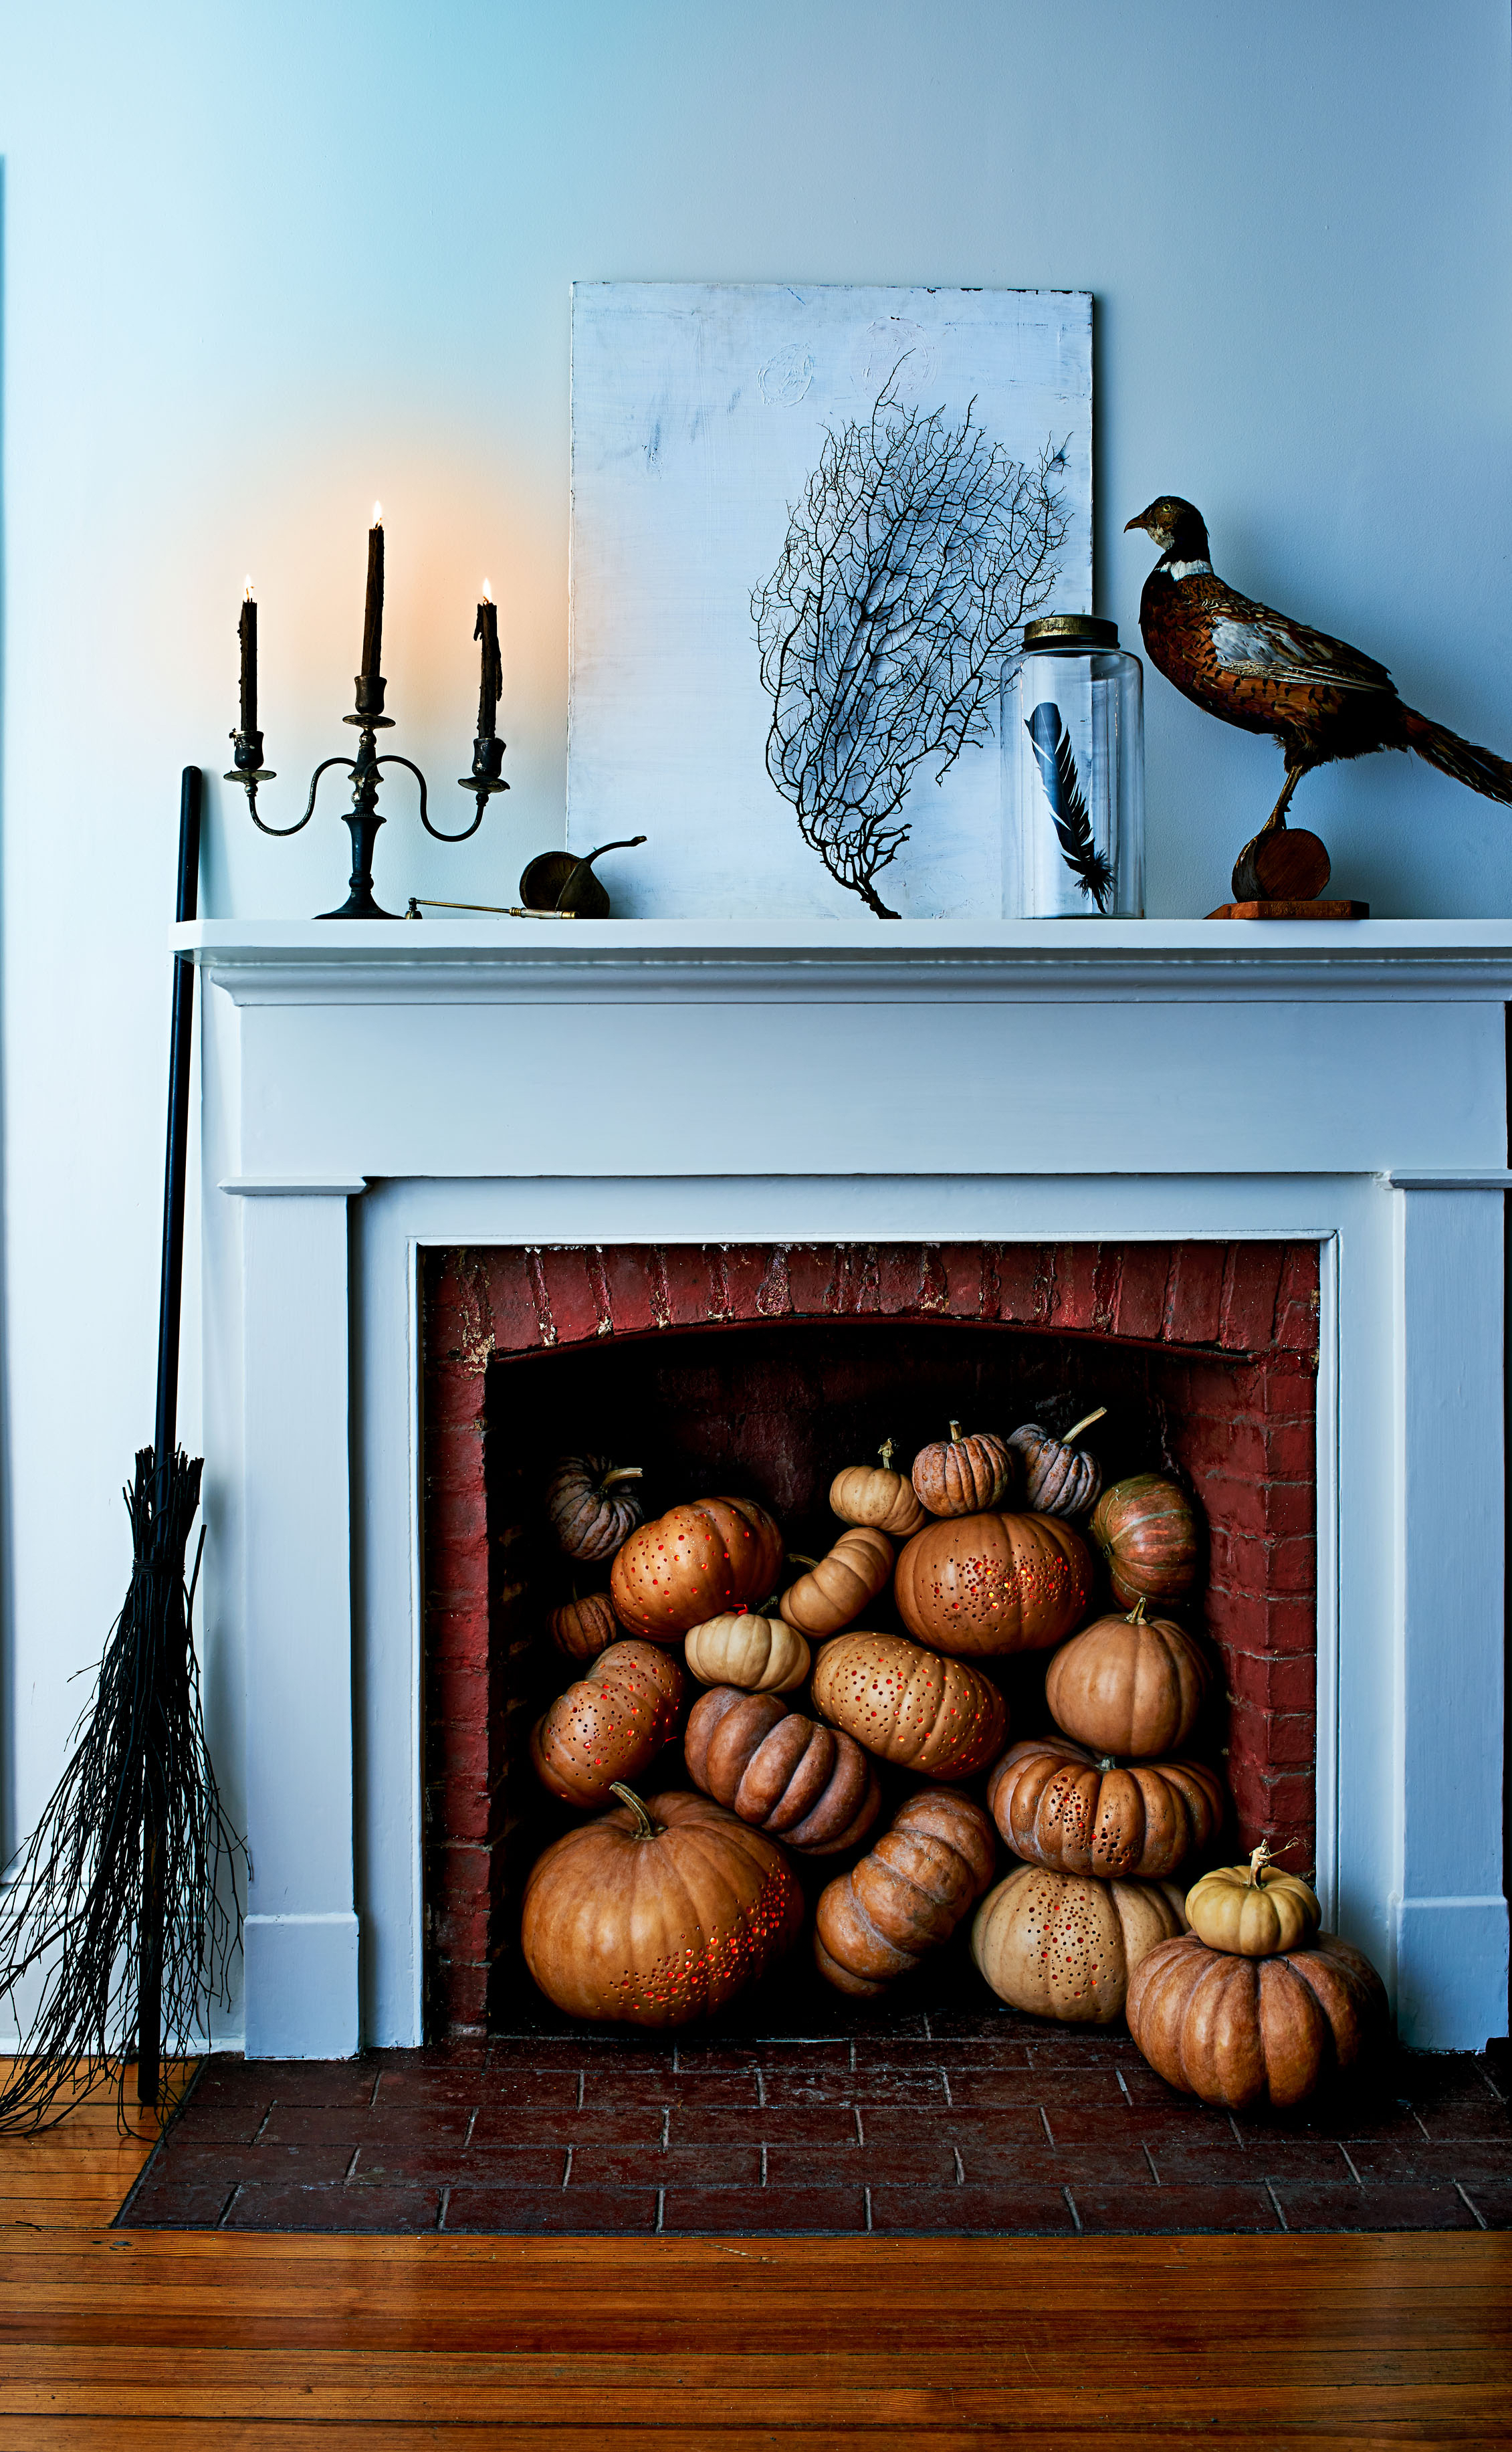 drilled pumpkins in a fireplace